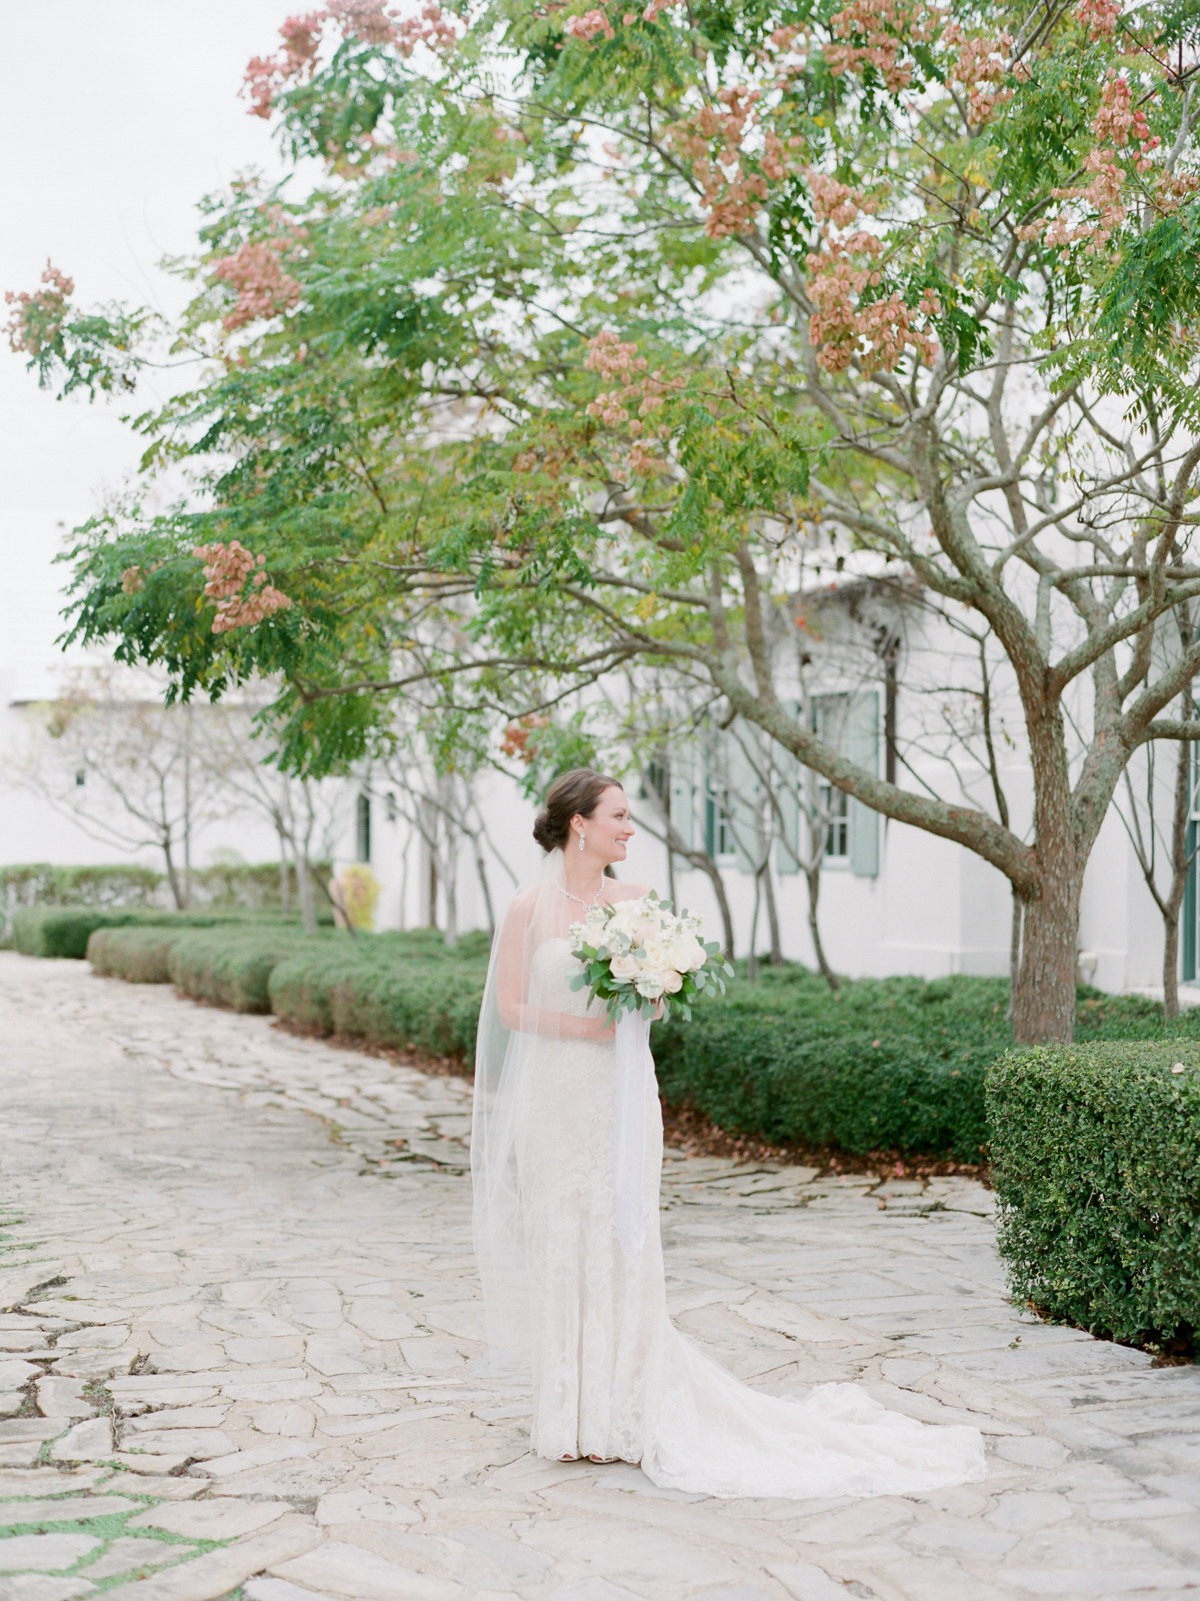 30-florida-wedding-kayliebpoplinphotography